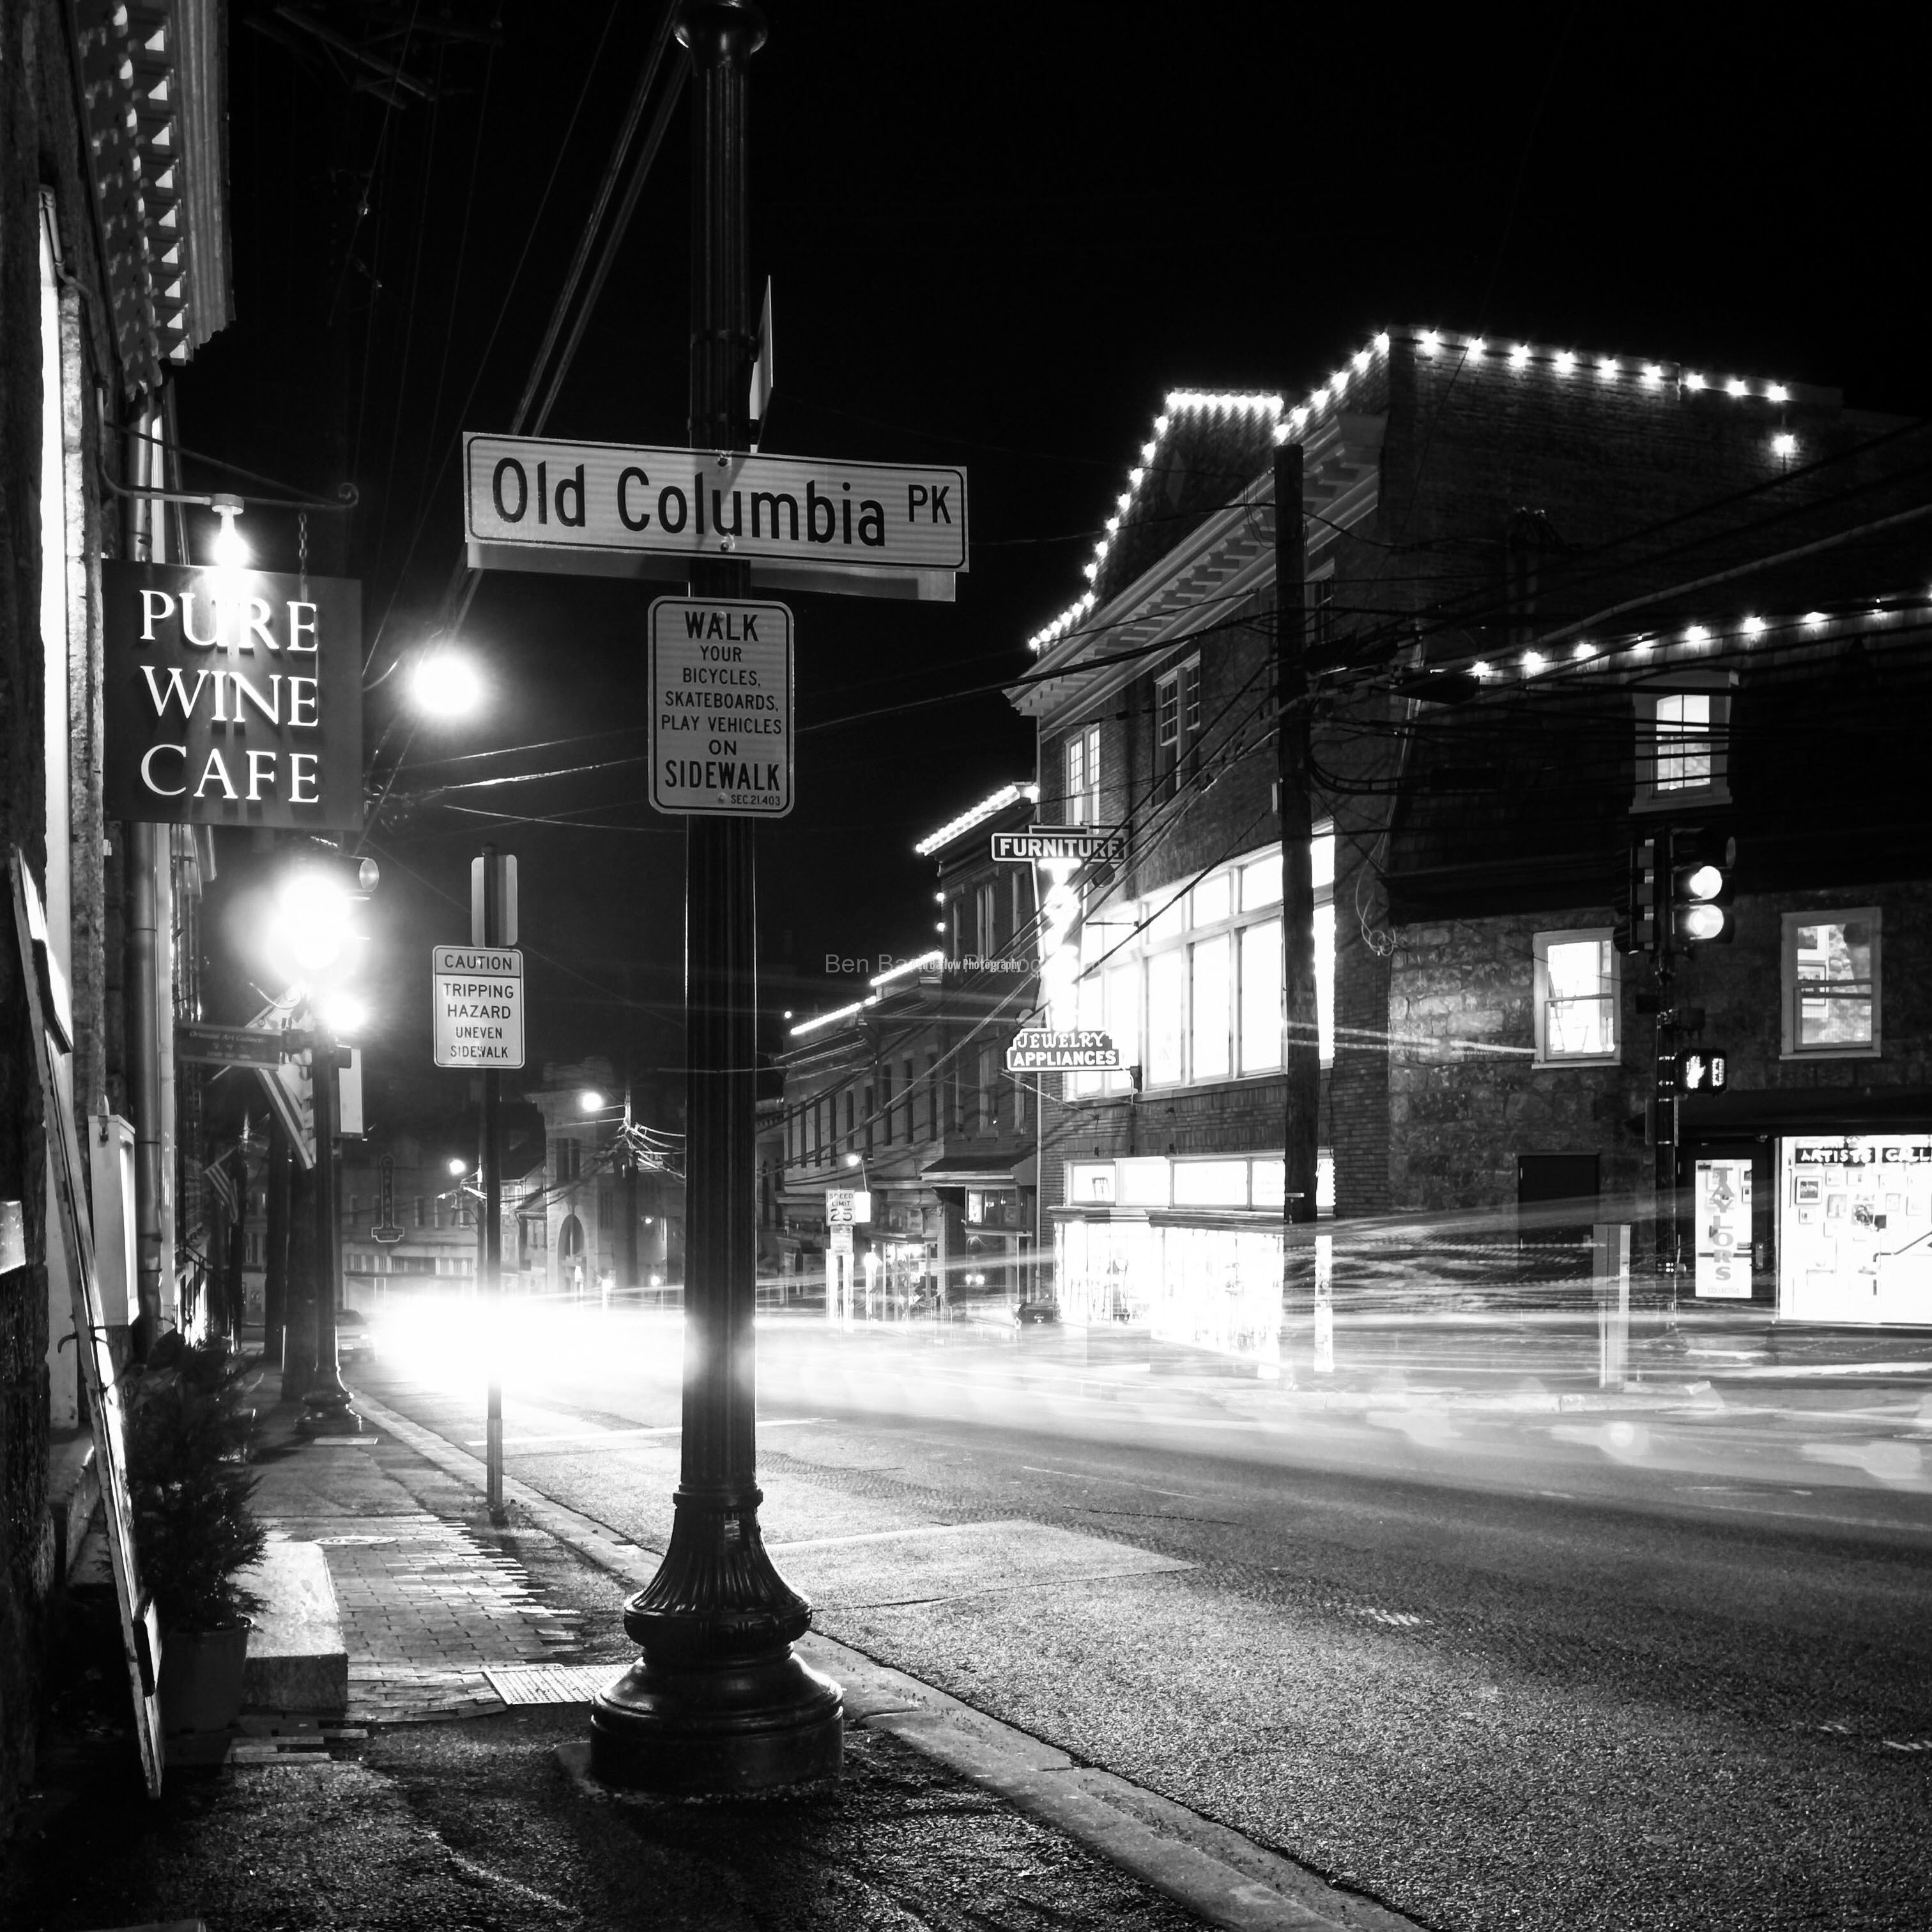 Main Street and Old Columbia Pike, Ellicott City, Md.